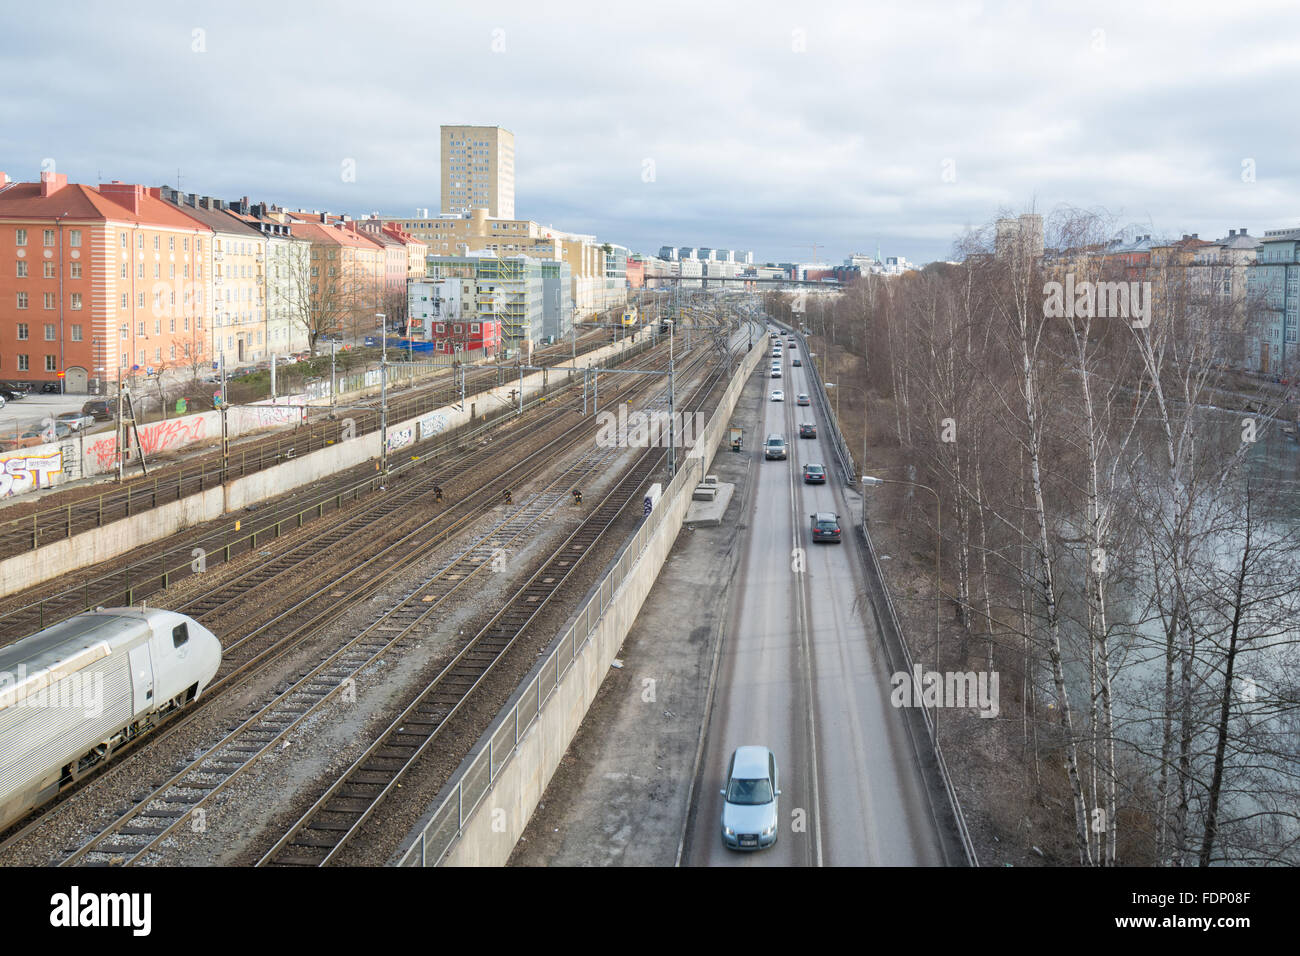 Stockholm transport links - Railway line, road and waterway leading into Stockholm centre, Sweden, Europe Stock Photo